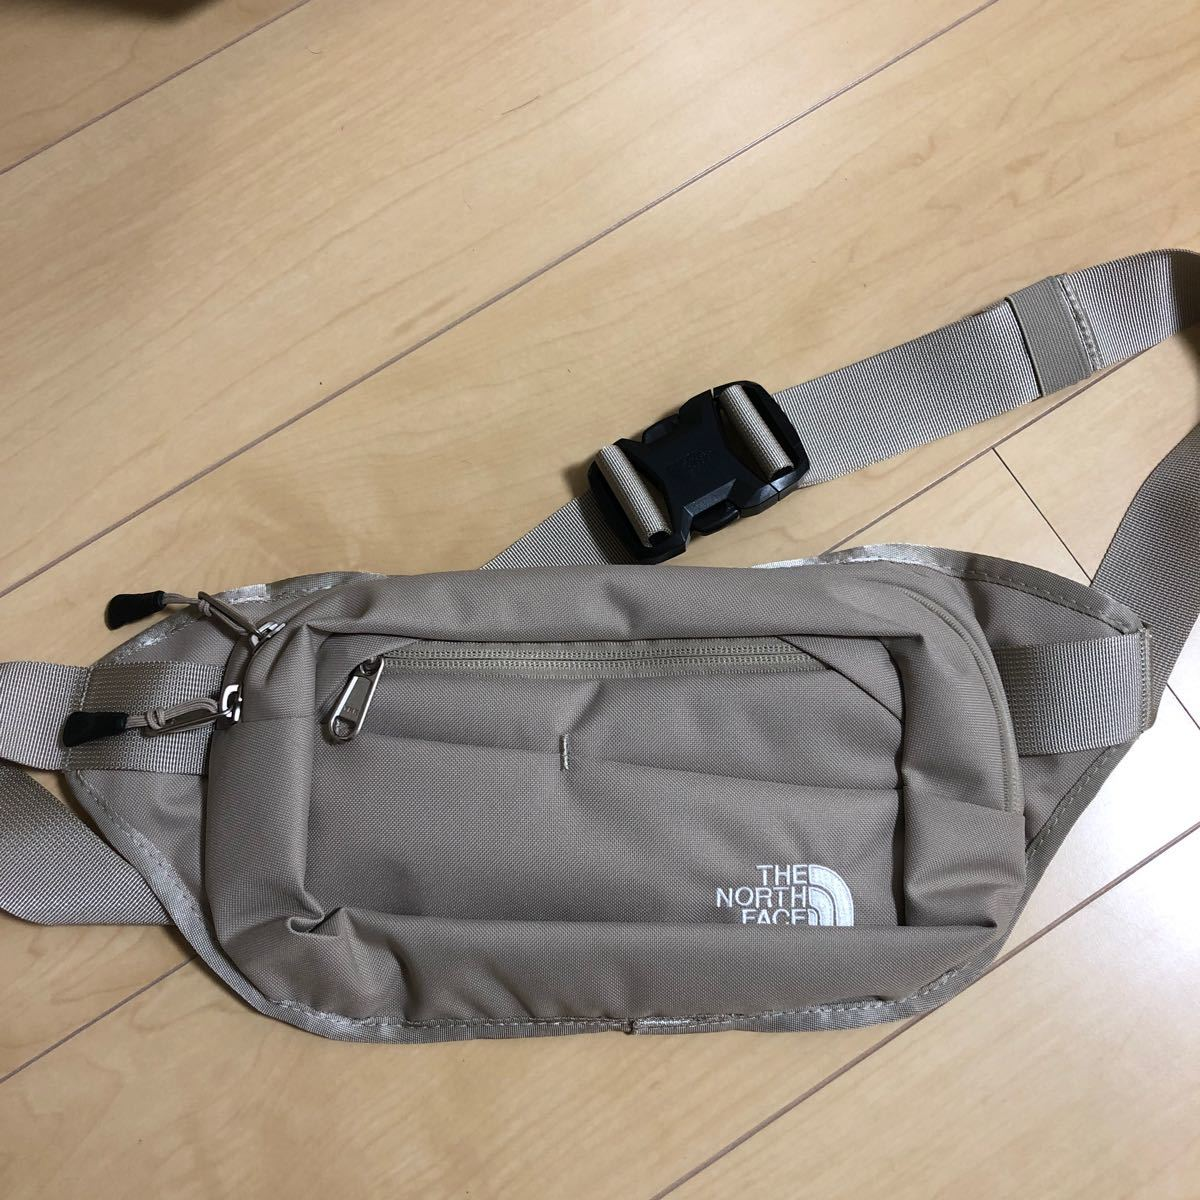 【THE NORTH FACE】 【THE NORTH FACE】ノースフェイス ウエストバッグ